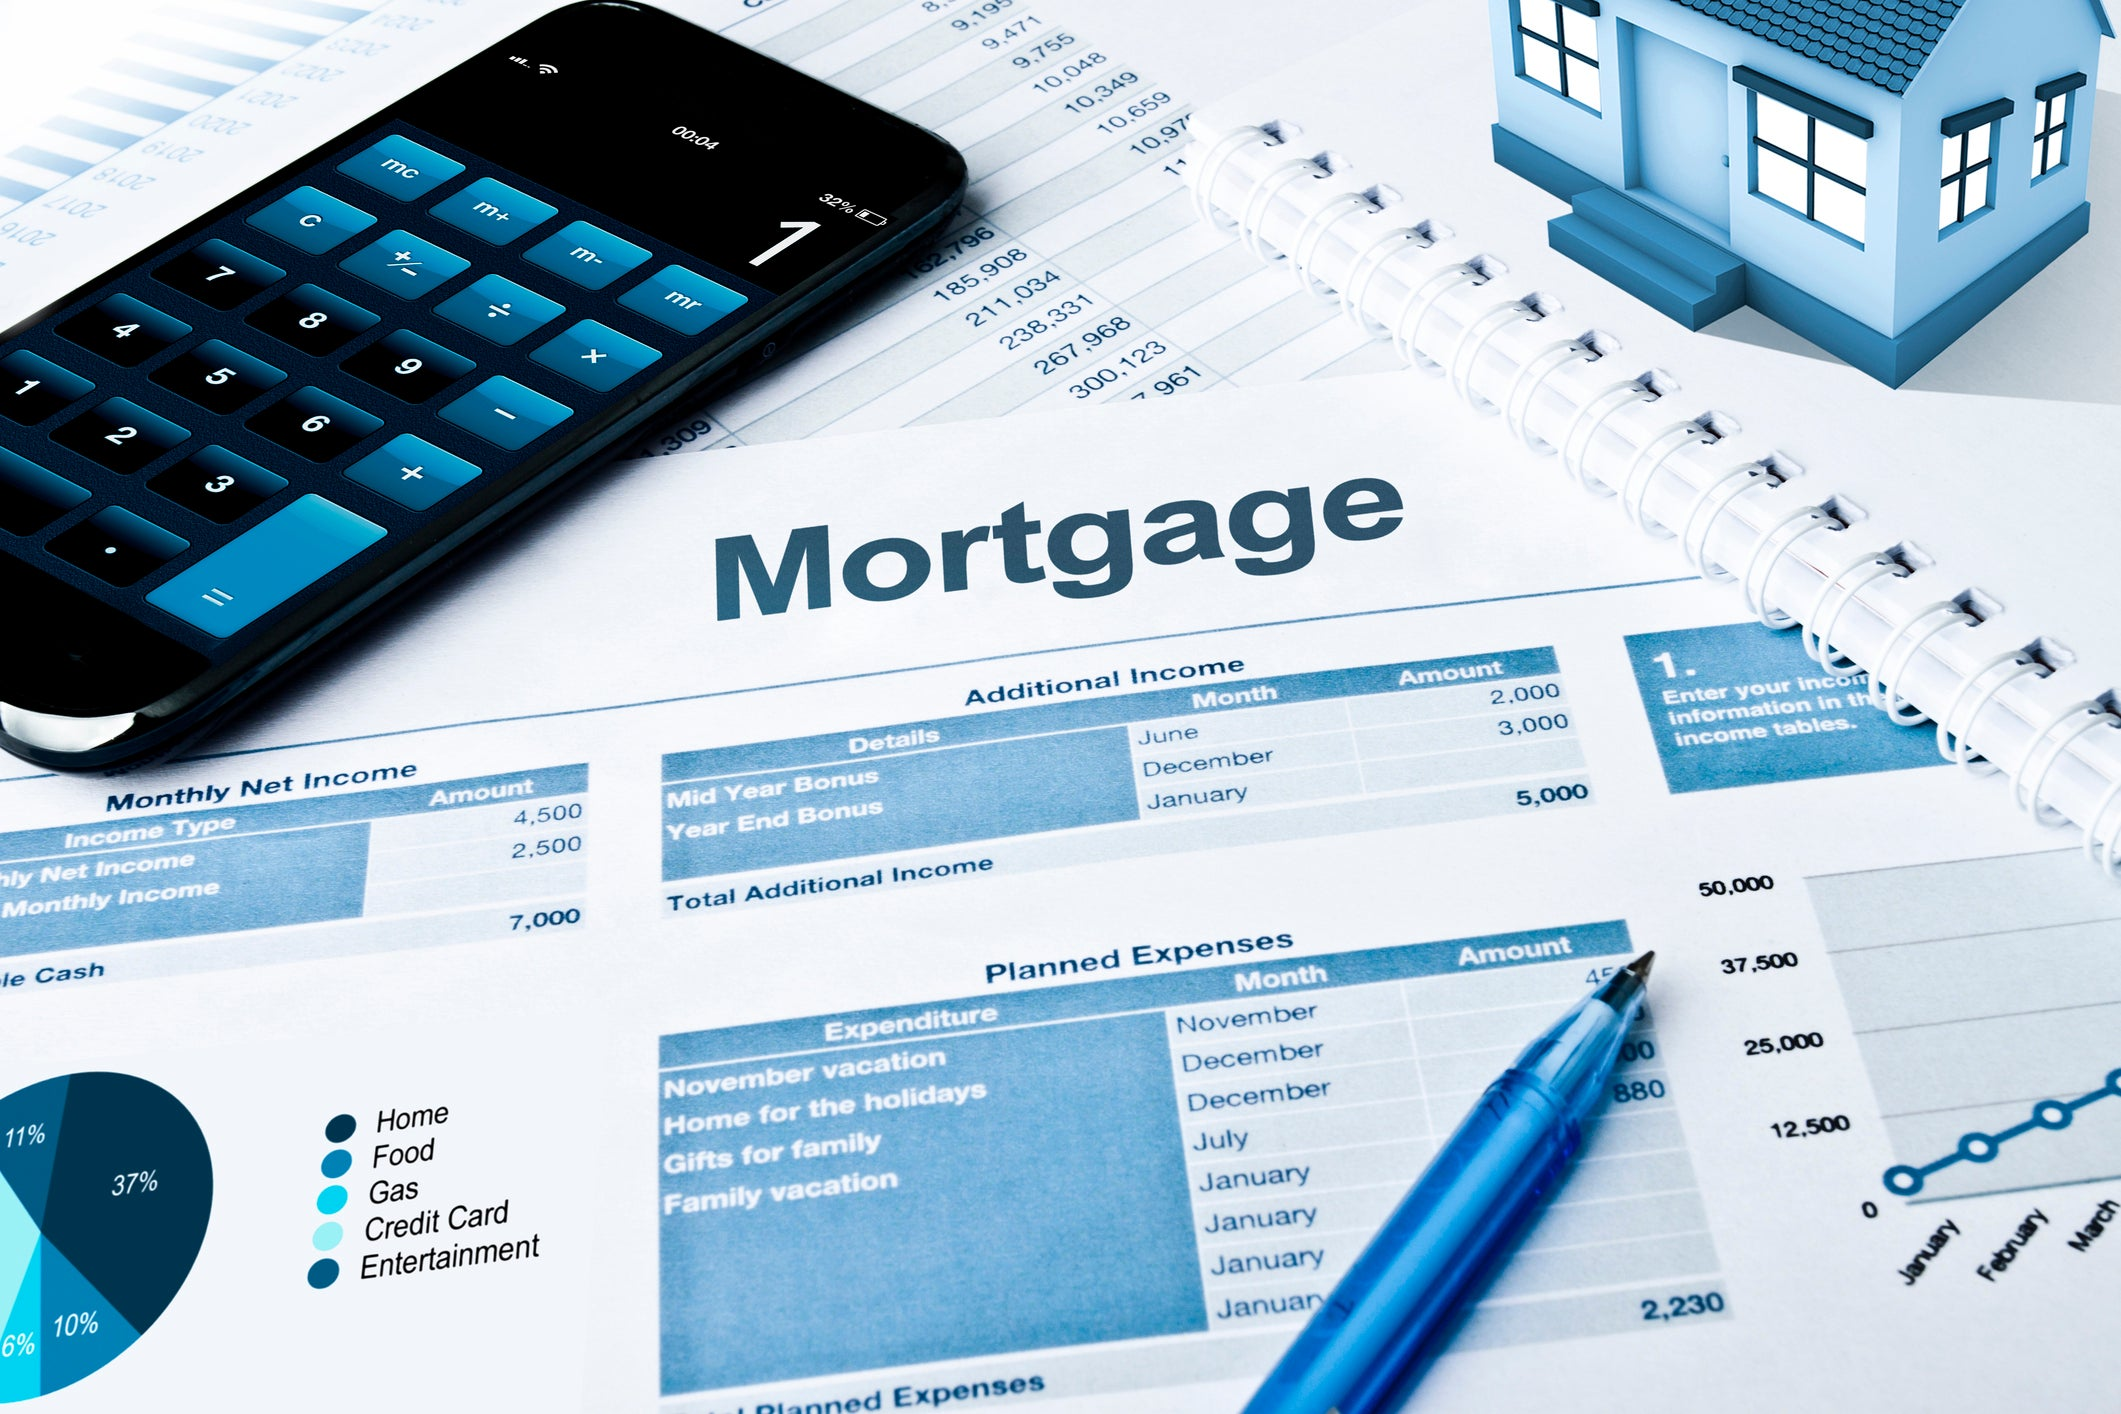 Mortgage documents with pen and calculator.